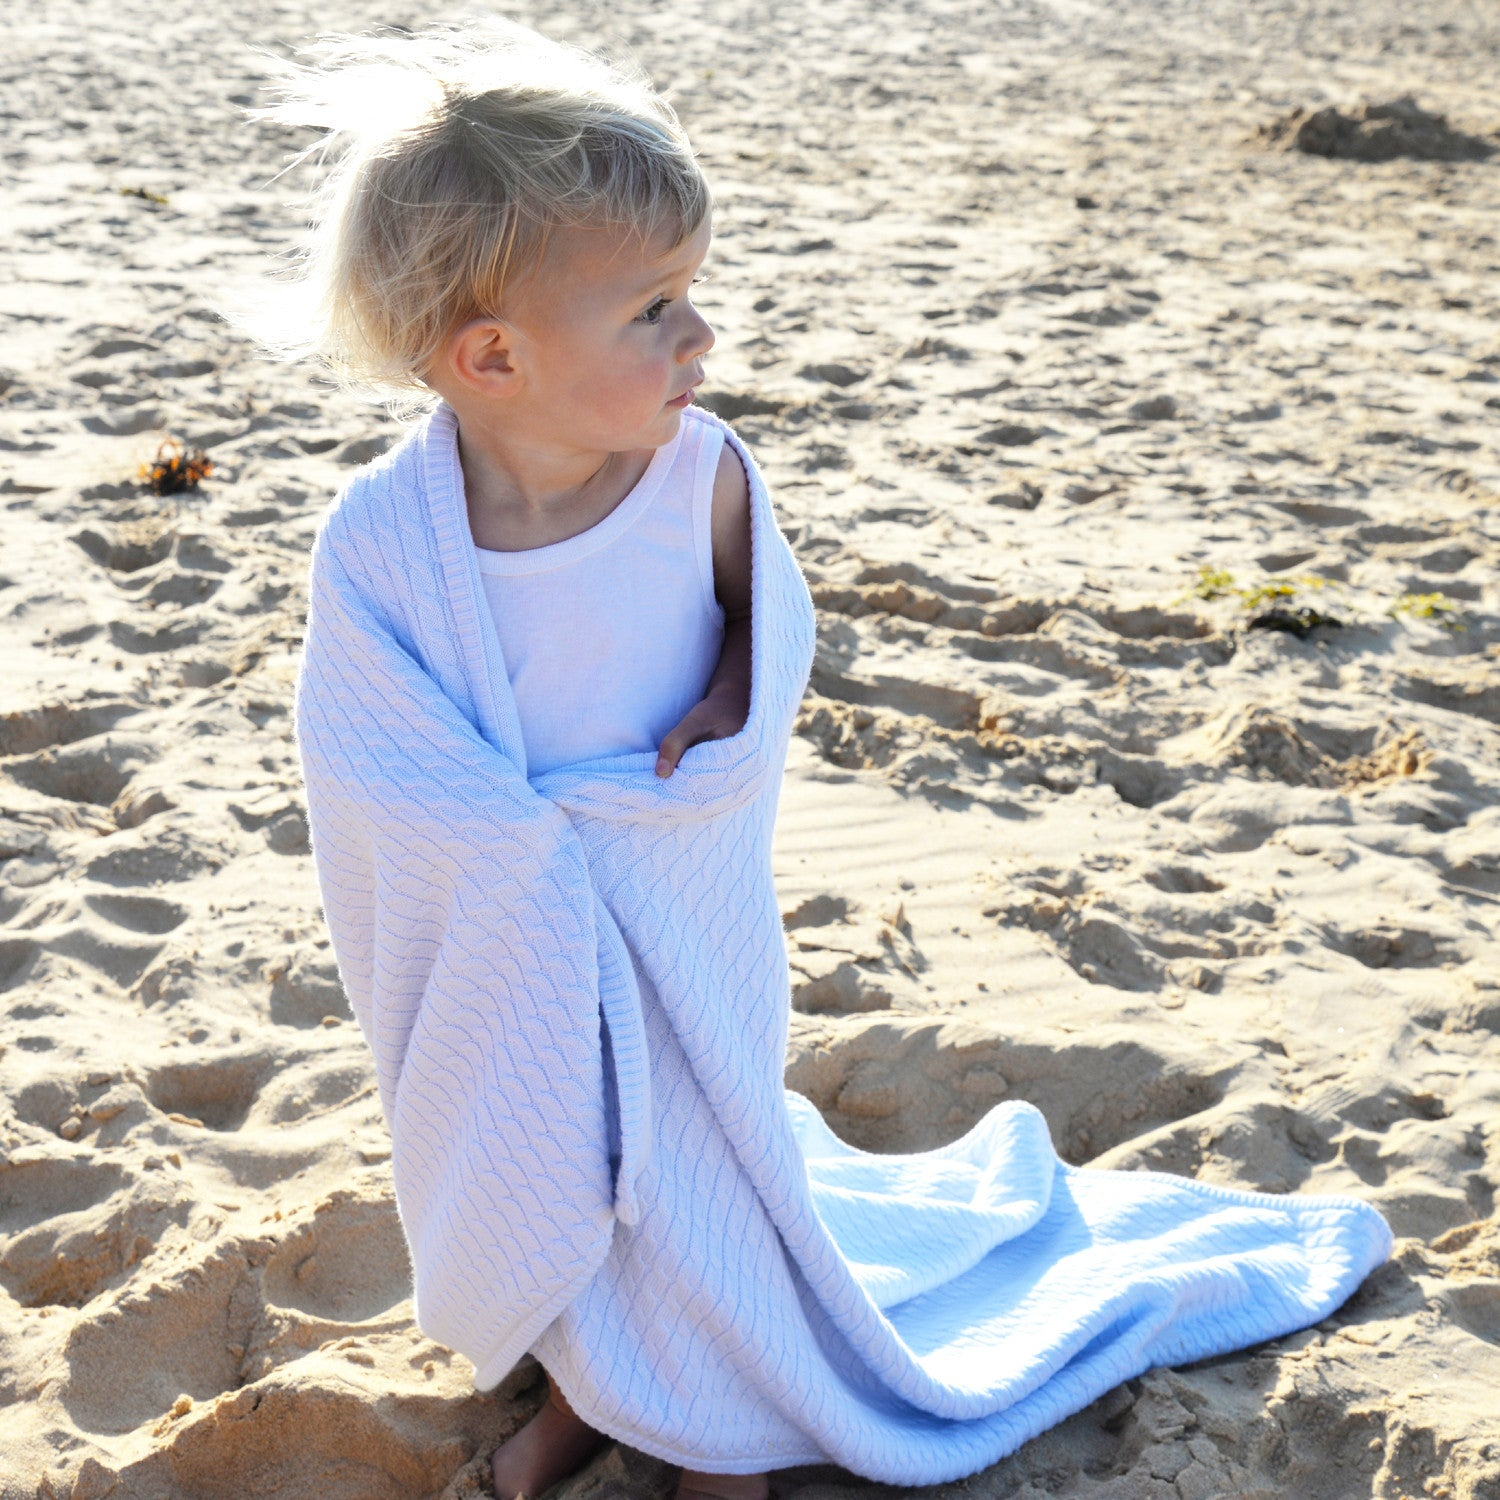 girl on beach with blue knit baby blanket